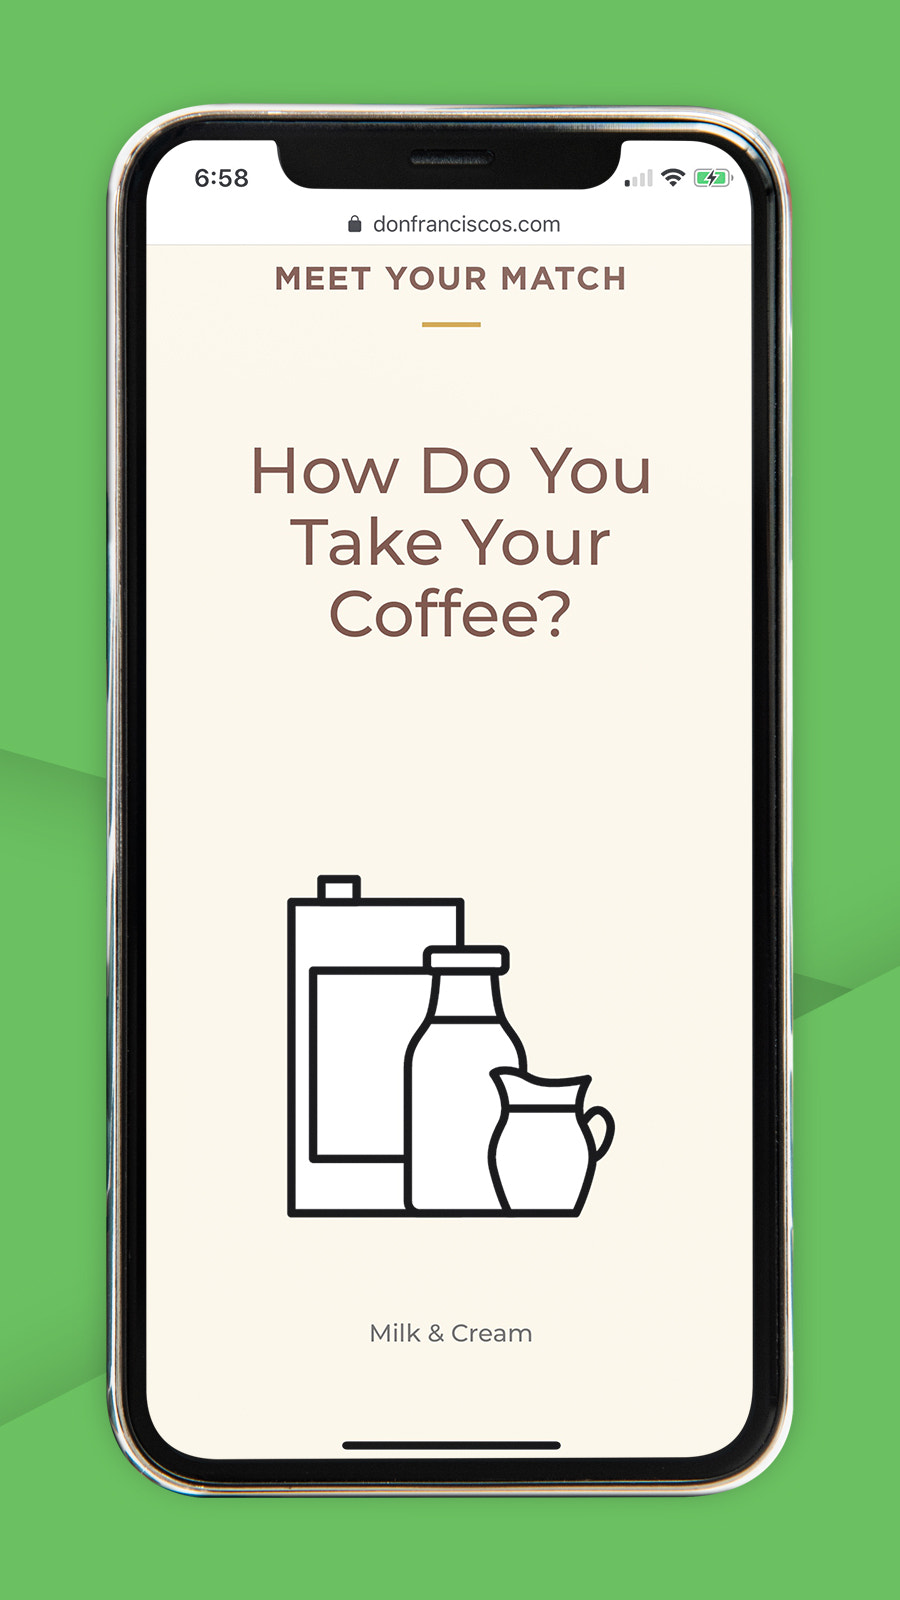 Coffee product finder, quiz and product recommendations